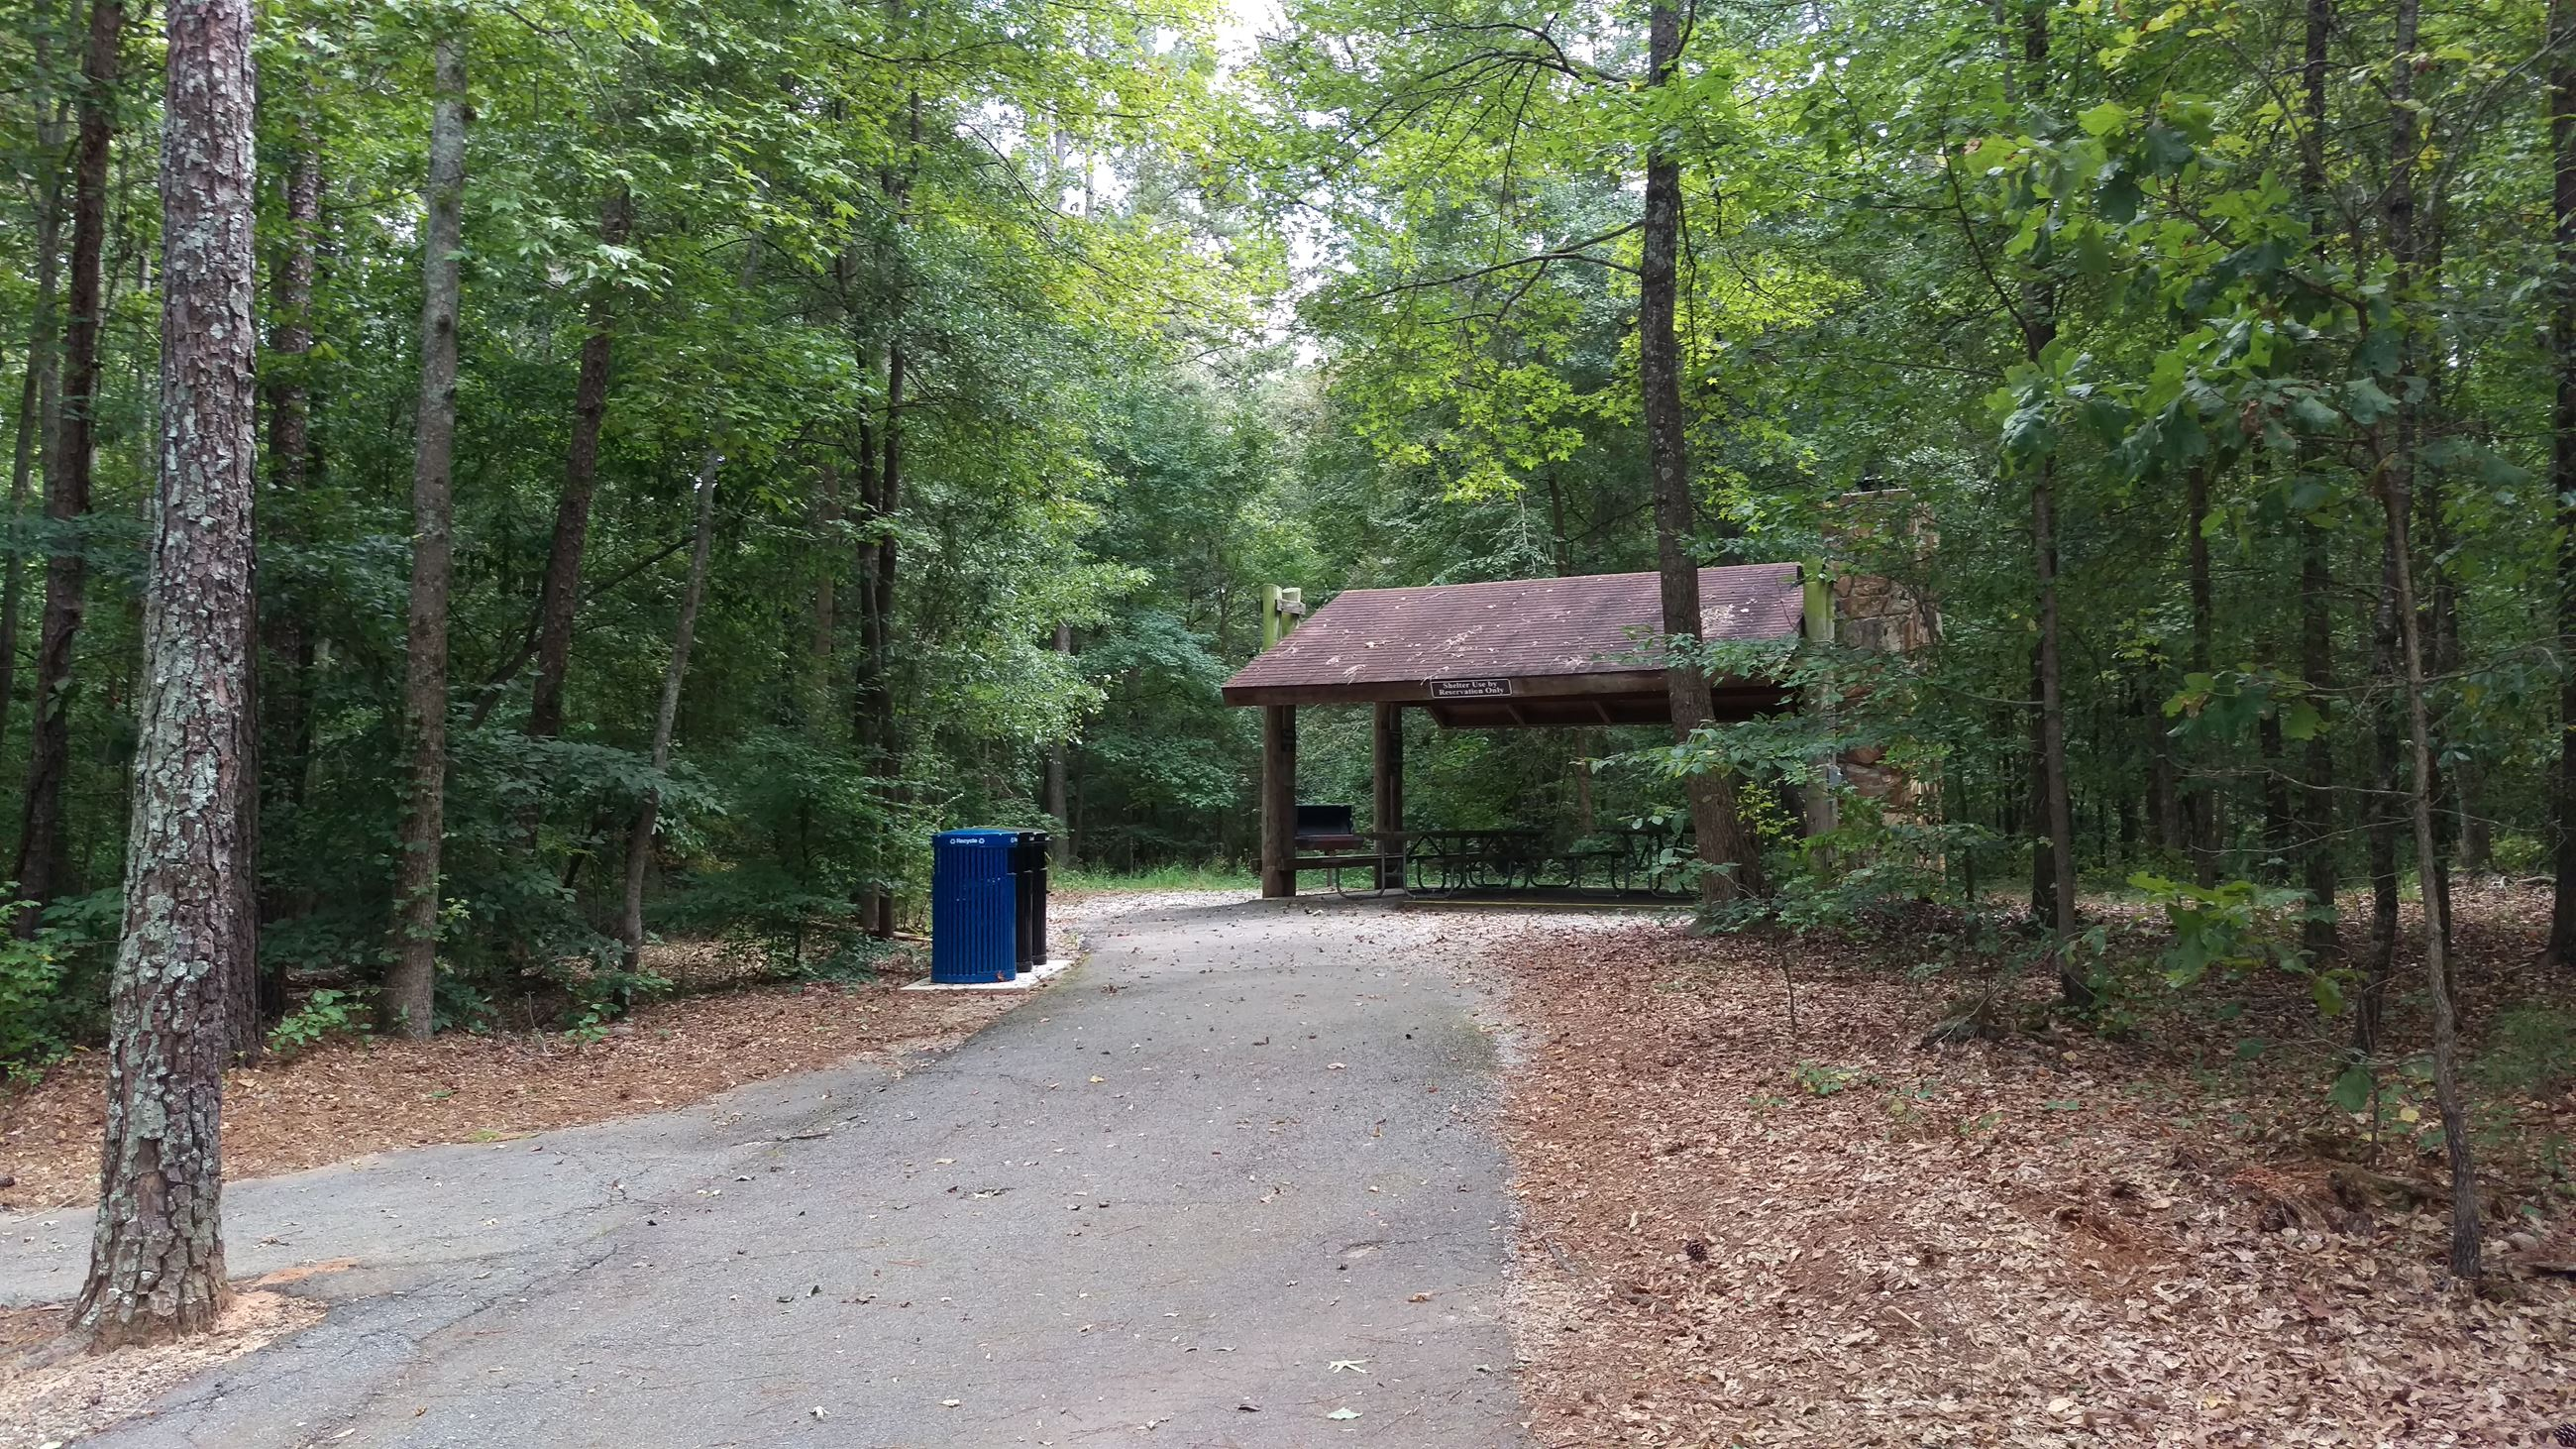 Photo of Picnic Shelter 1 at Sandy Creek Park.